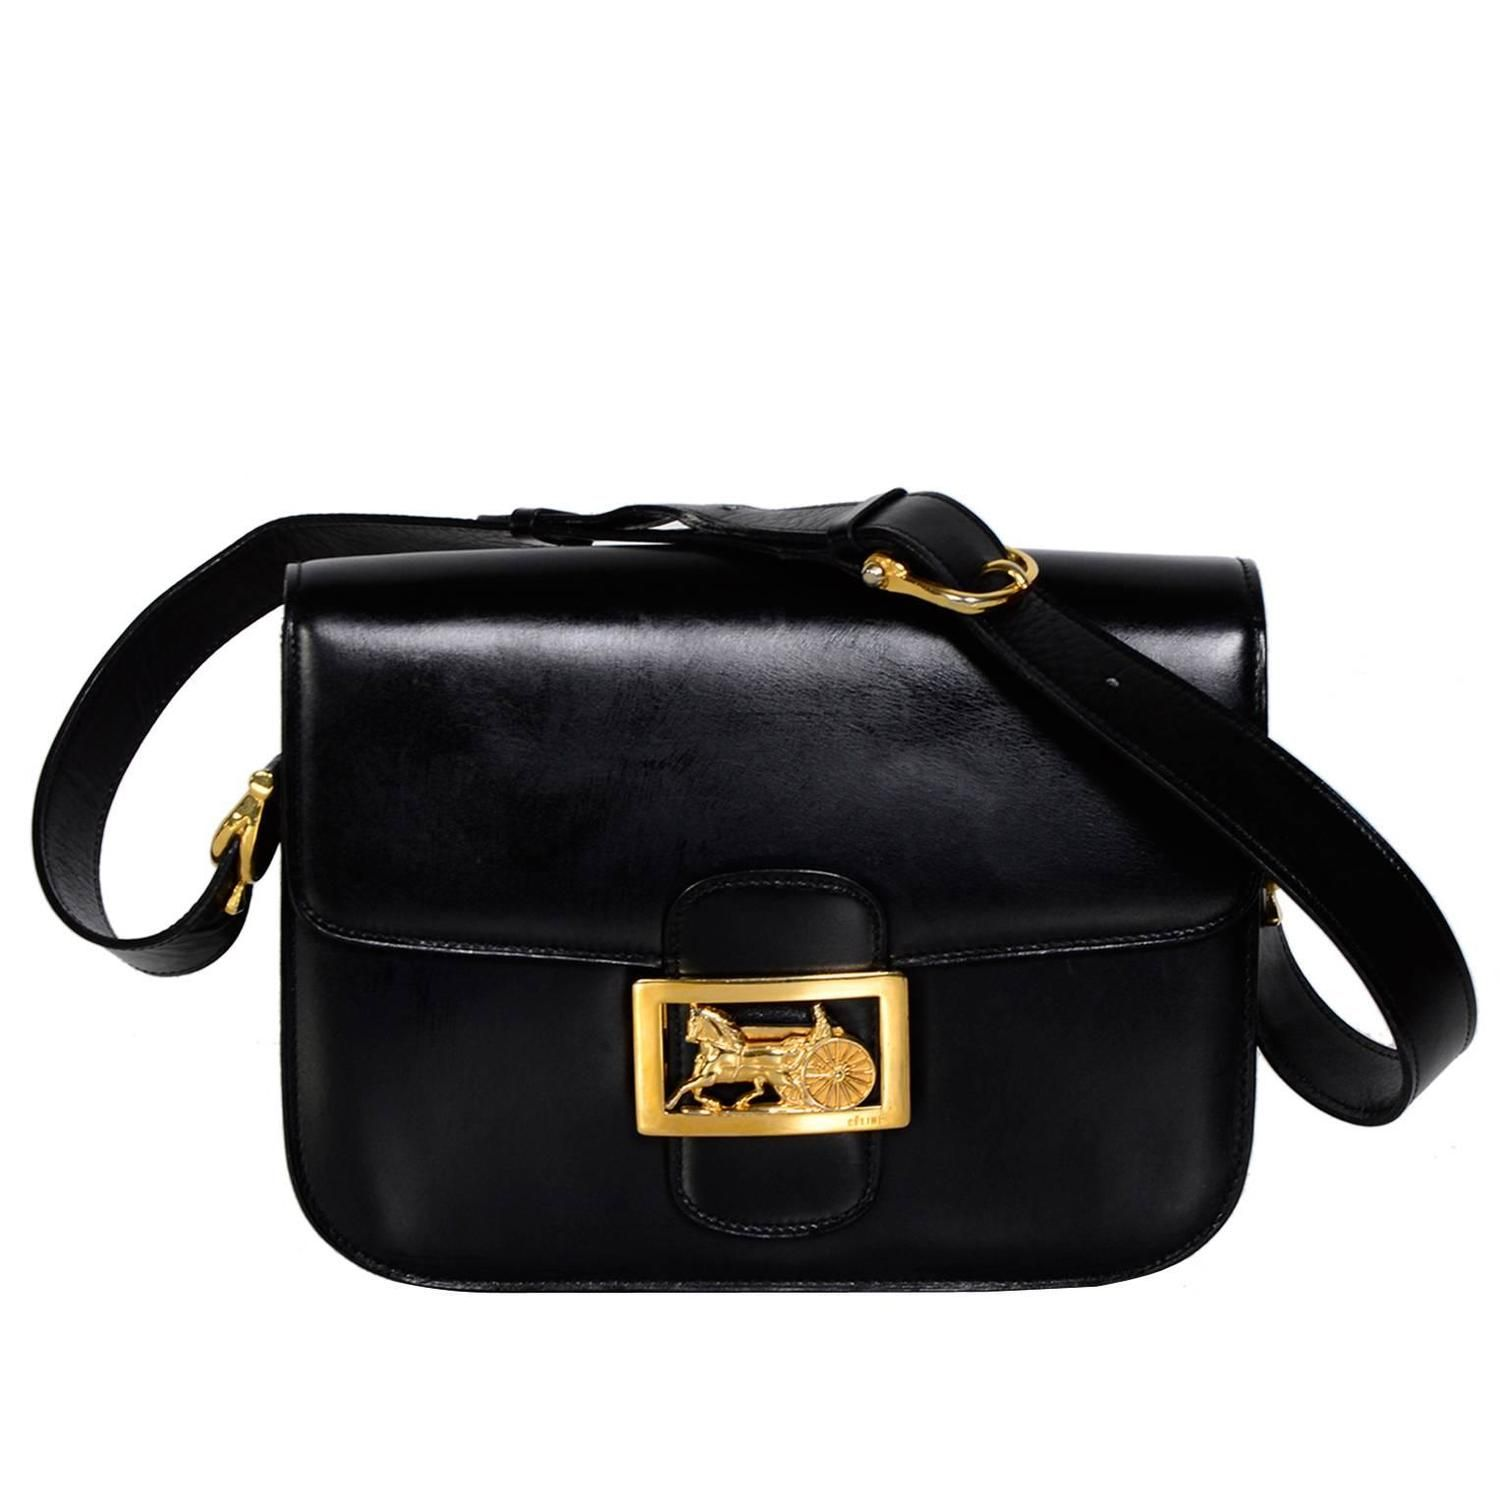 CELINE Vintage Horse Carriage Buckle Black Box Leather Shoulder Bag   From a  collection of rare c551c5f1a14